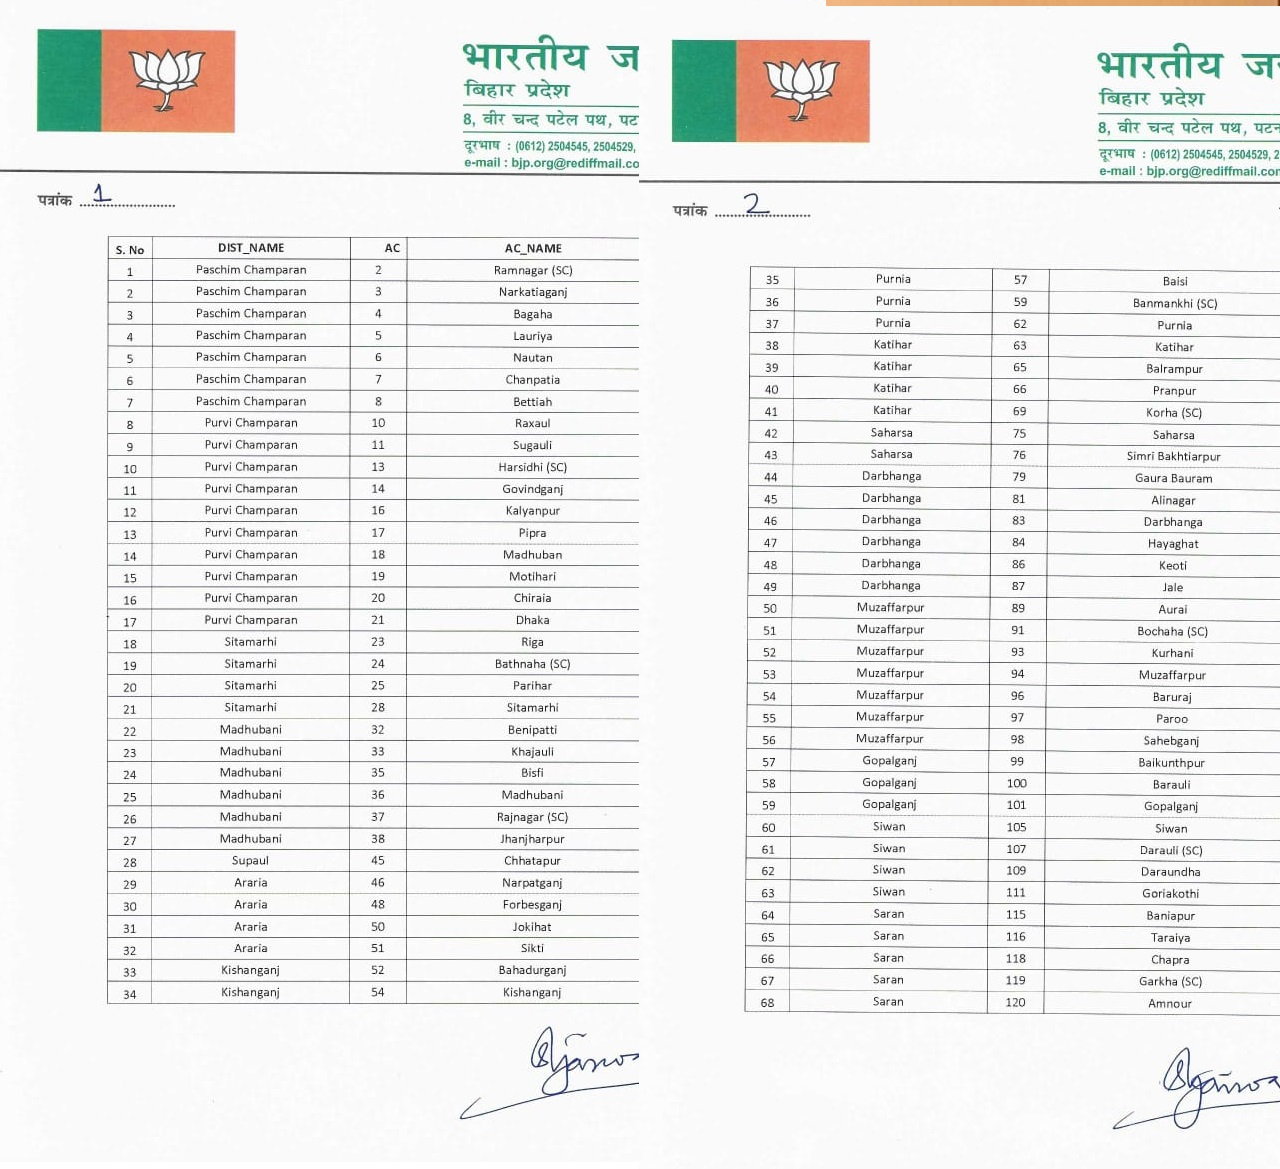 Bihar Election BJP released list of seats - News Nation